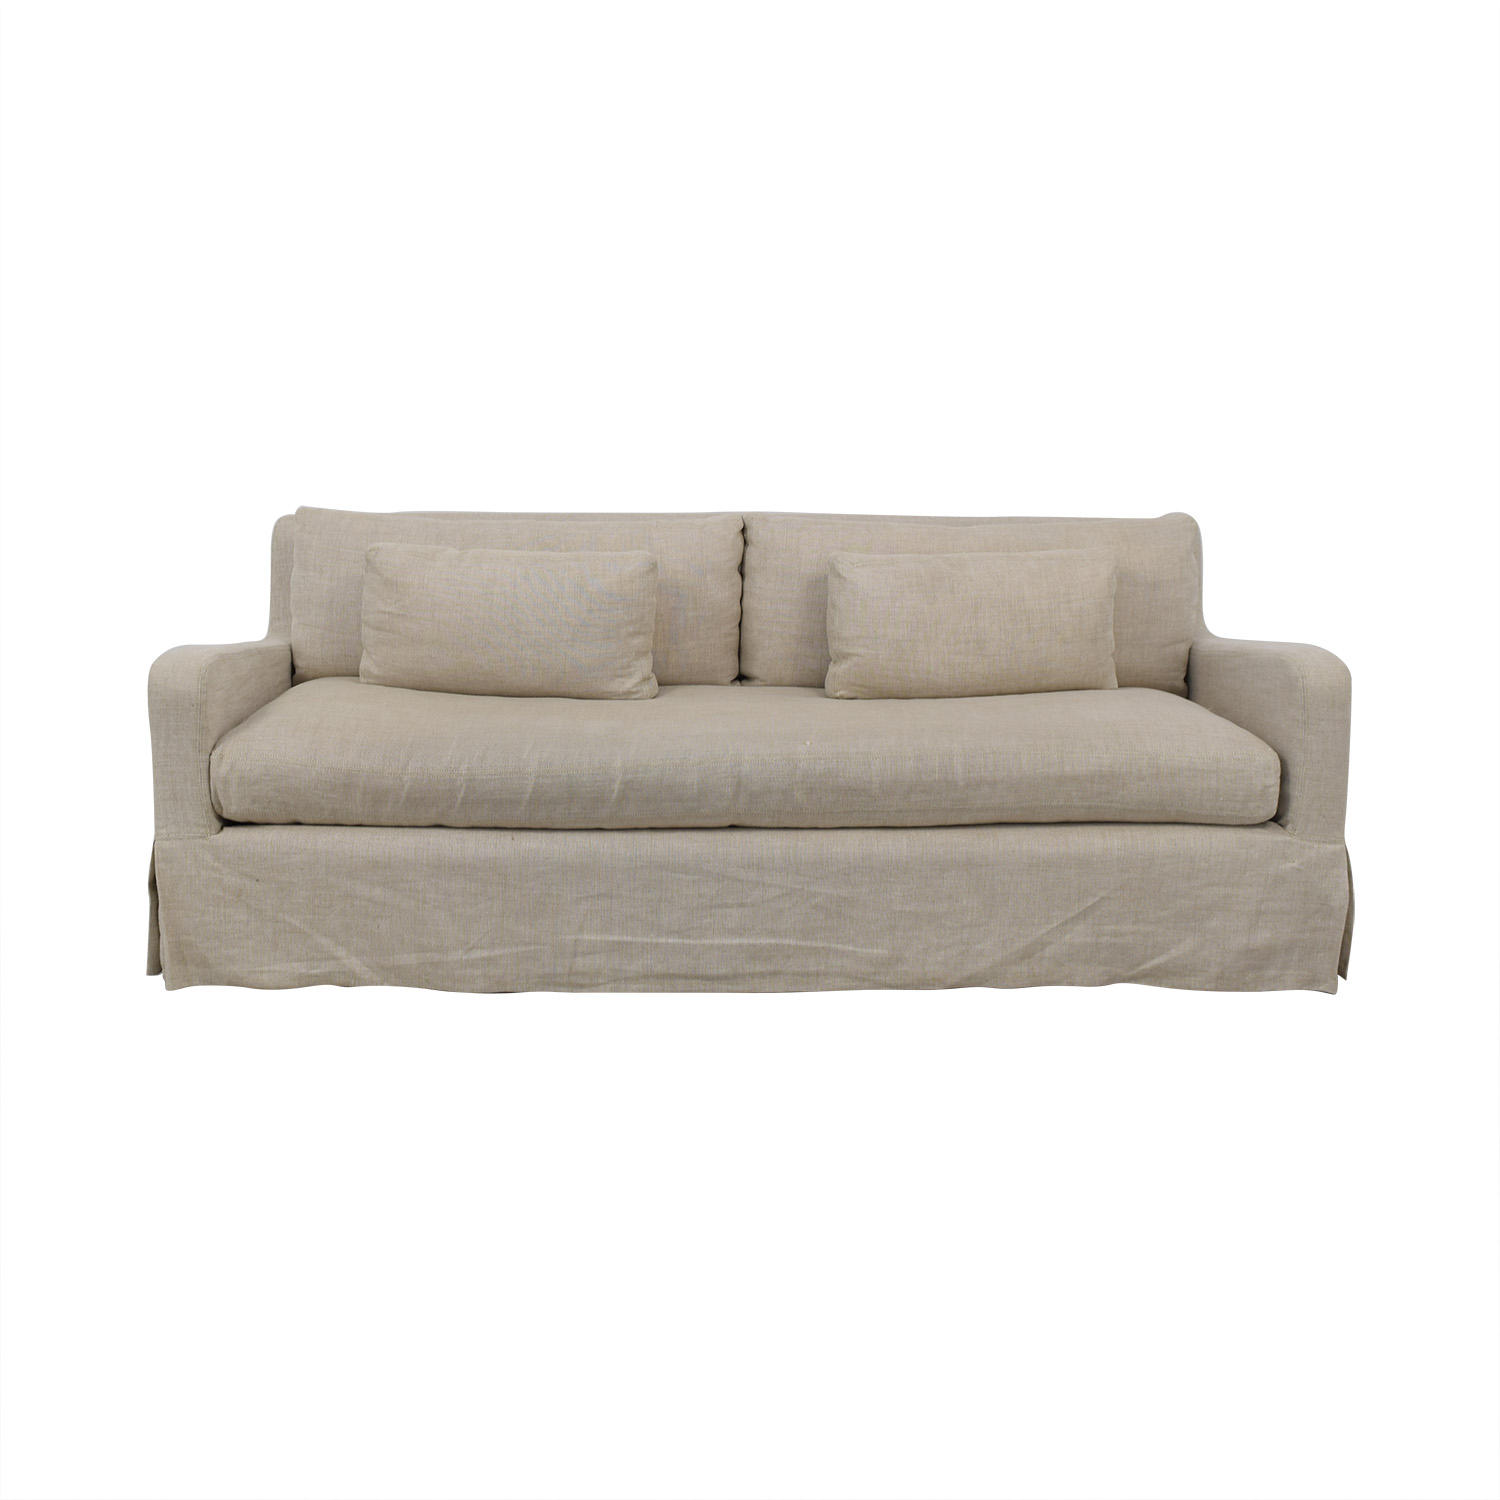 buy Restoration Hardware Restoration Hardware Belgian Track Arm Slipcovered Two-Seat Cushion Sofa online